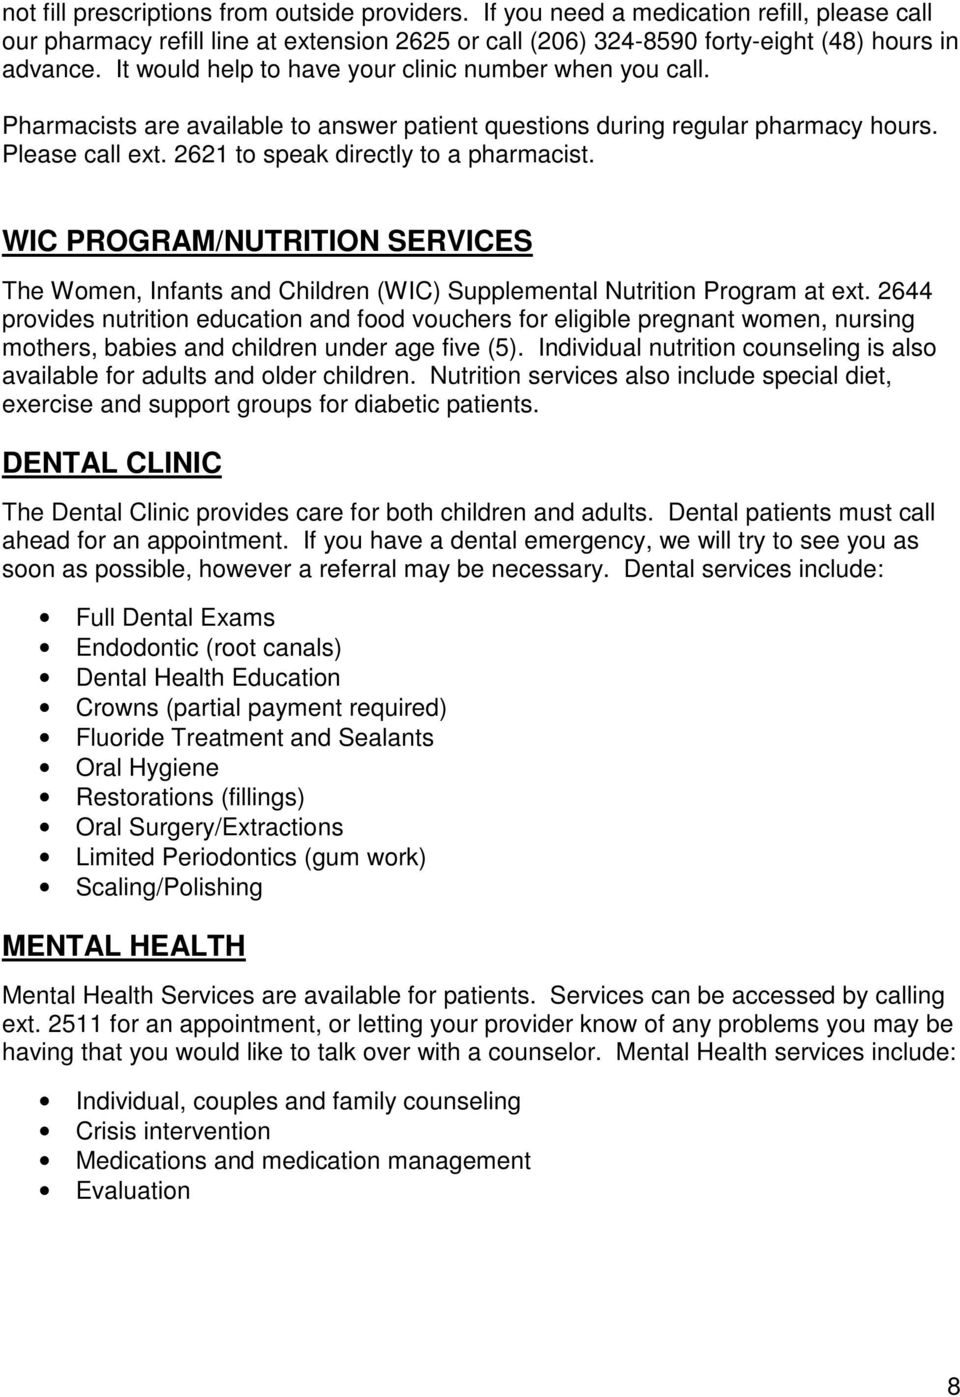 WIC PROGRAM/NUTRITION SERVICES The Women, Infants and Children (WIC) Supplemental Nutrition Program at ext.